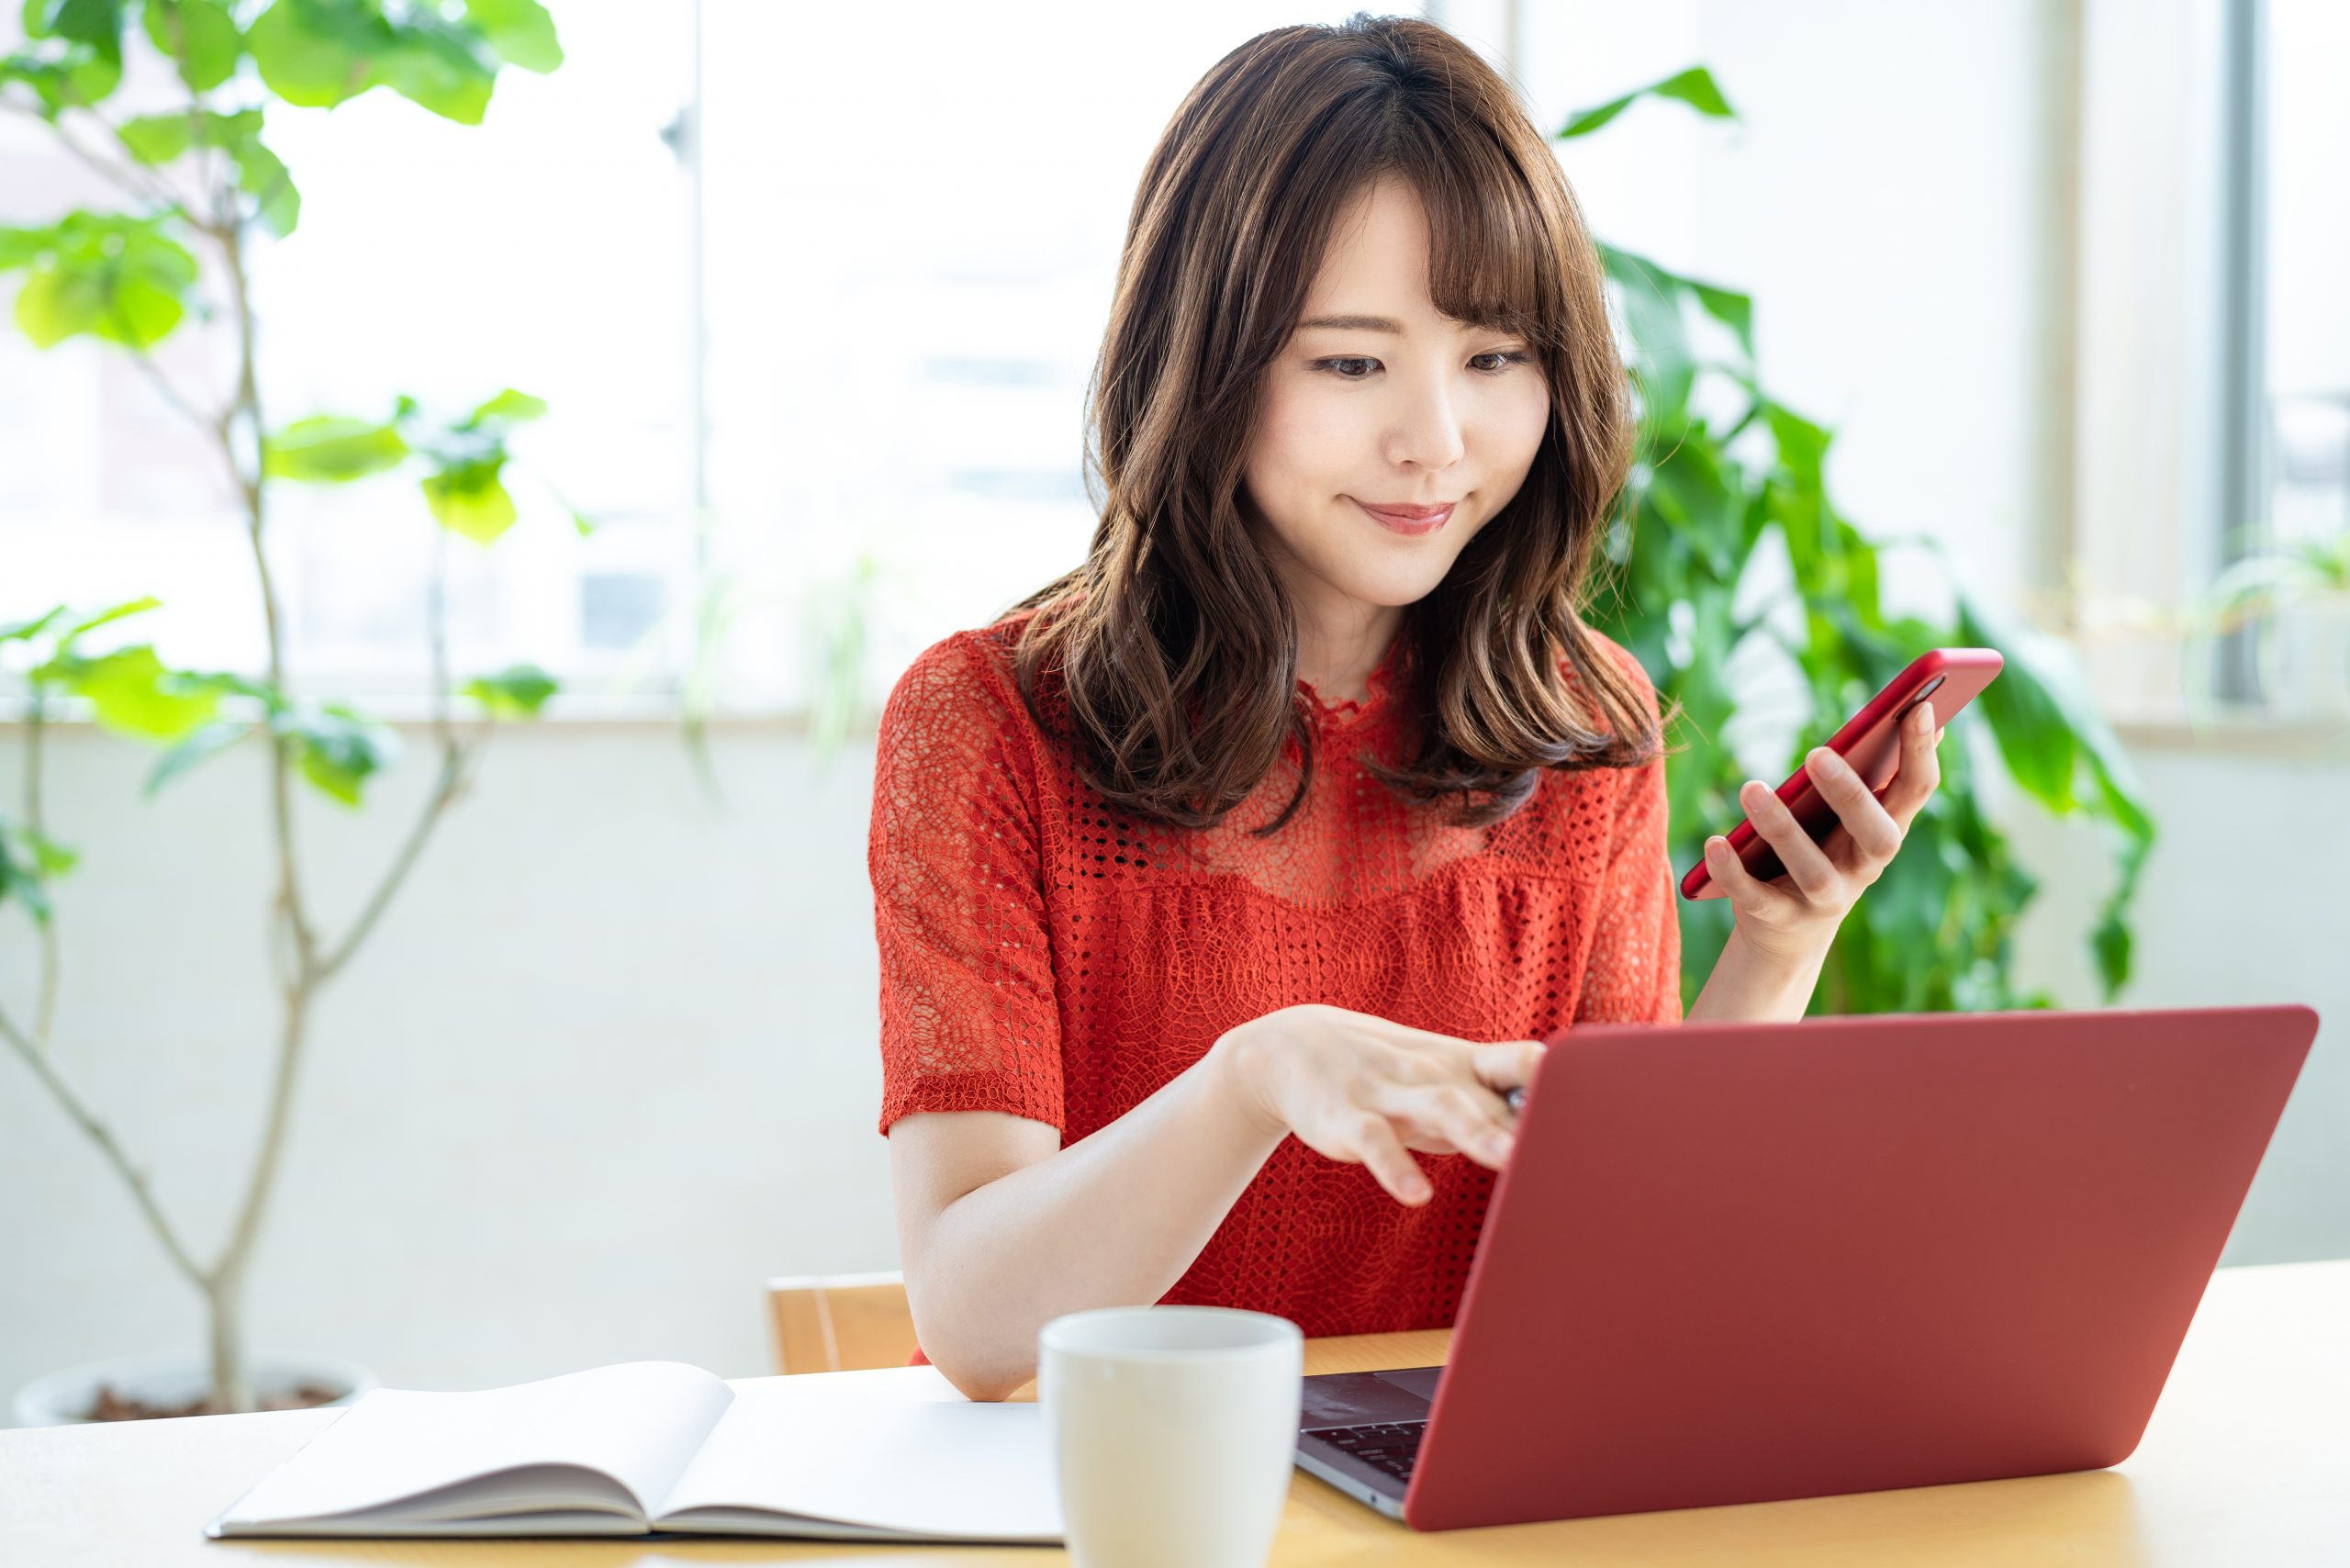 asian woman working remotely using TeamViewer Mac Remote Desktop while holding iphone